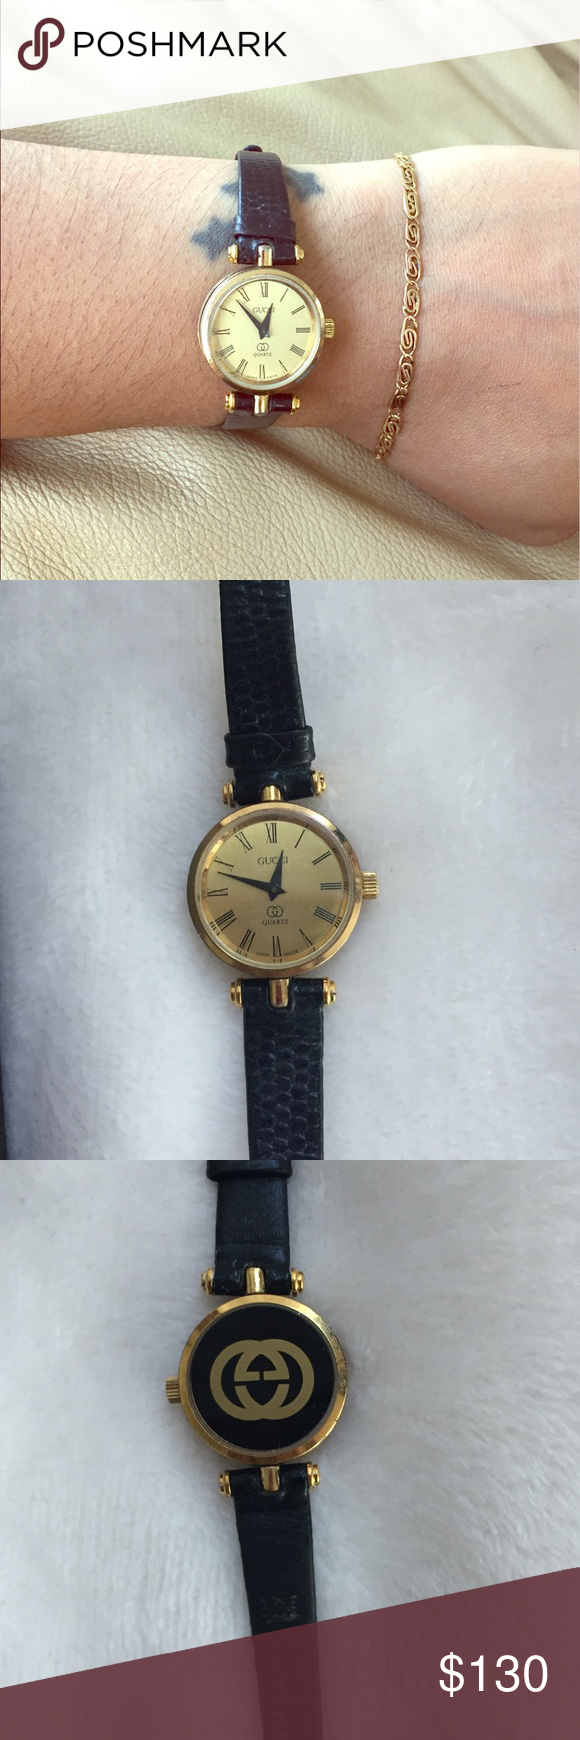 4b50db91a11 Ladies Gucci 2000 M Watch Authentic!! Vintage. Preowned condition. New  battery and runs great. 18 K gold plated swiss 2000 M black enamel with  saphire ...